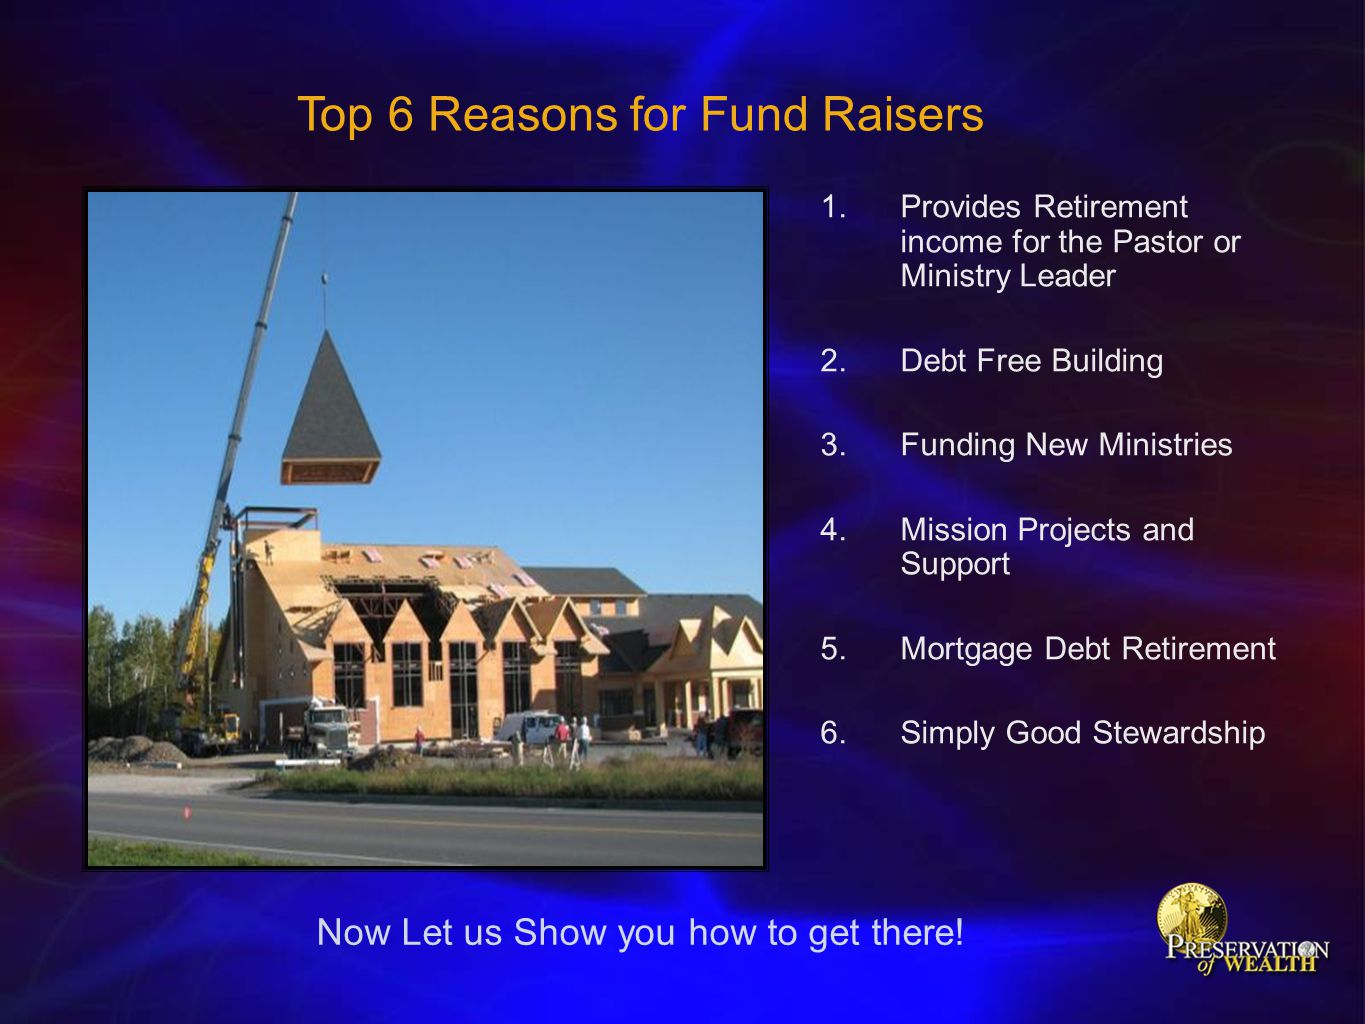 Top 6 Reasons for Fund Raisers